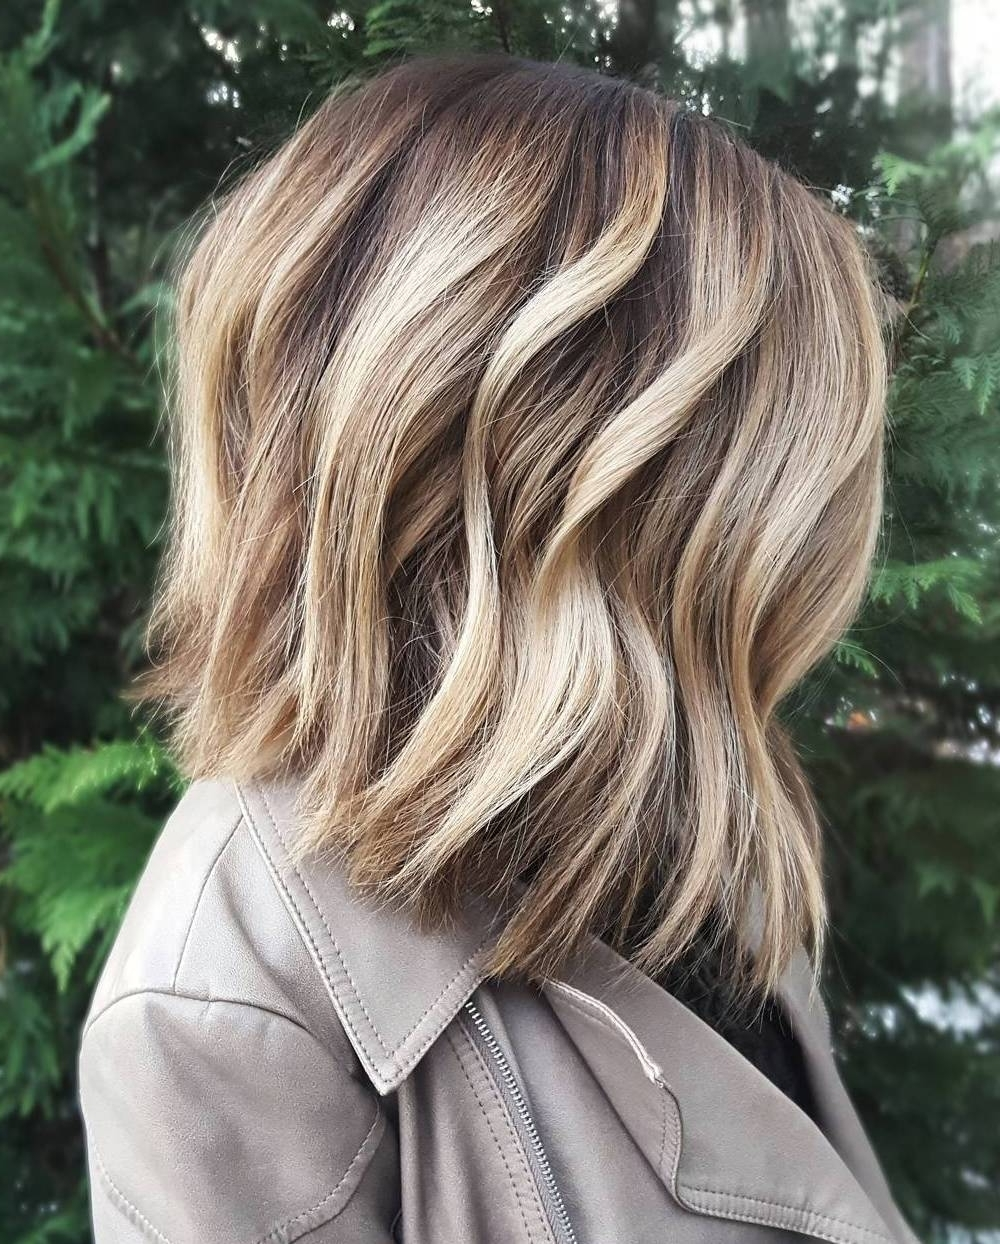 Preferred Cool Dirty Blonde Balayage Hairstyles Throughout 20 Dirty Blonde Hair Ideas That Work On Everyone (View 7 of 20)